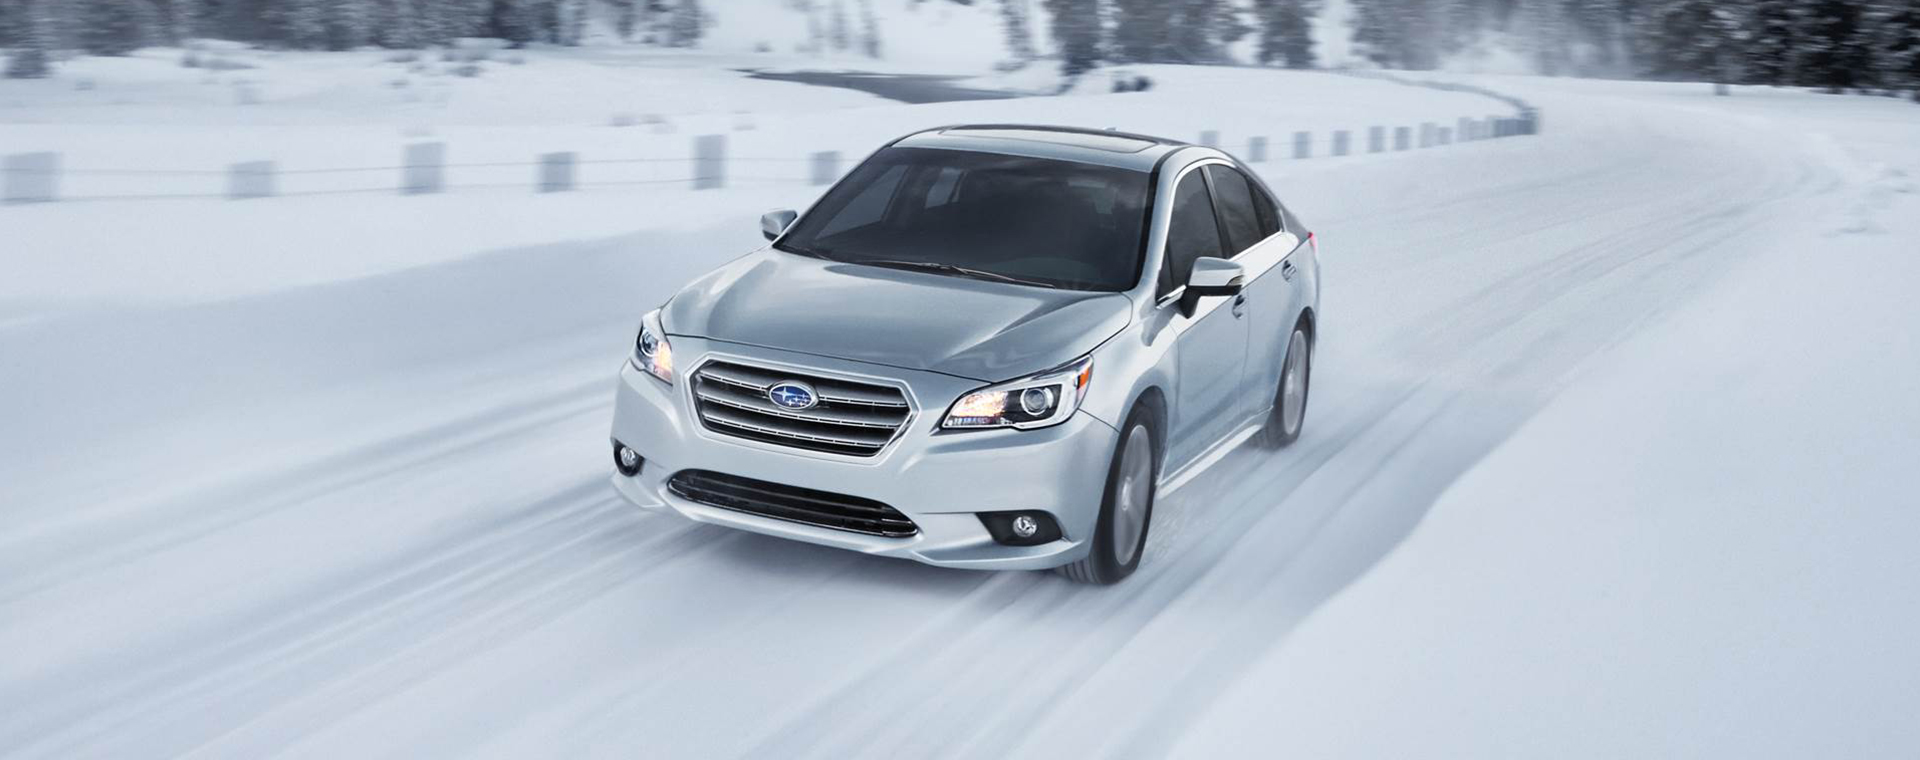 New Legacy inventory at Quirk Works Subaru